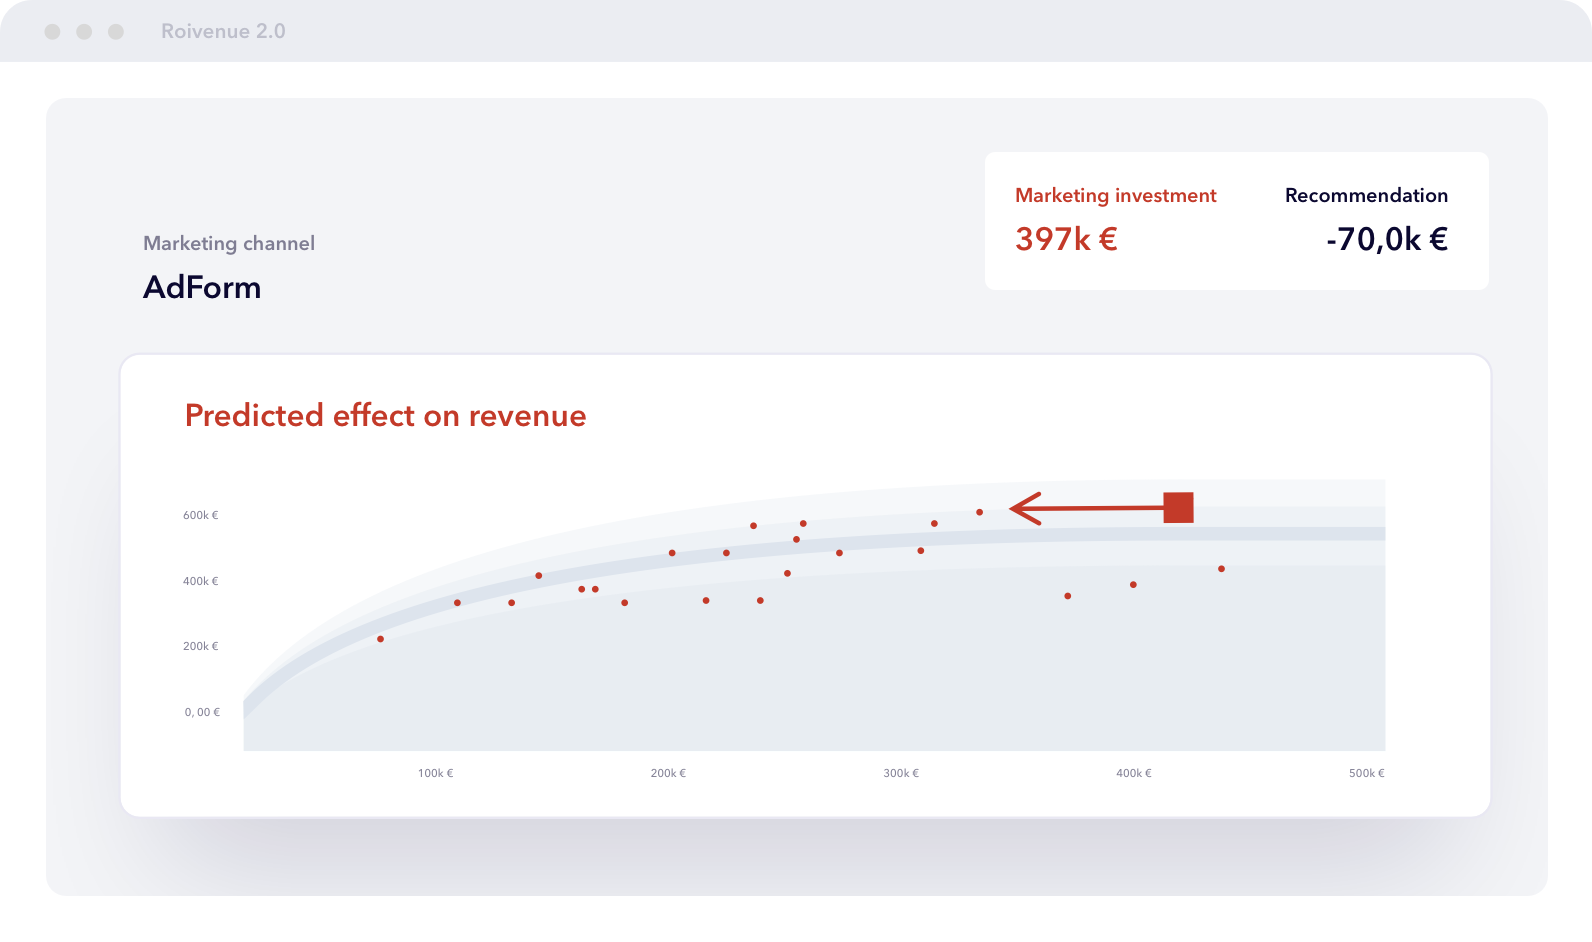 ROIVENUE Budget optimizer   Get recommendations for effective budget allocation   Our AI-based predictive model tells you how to identify over and undersaturated channels and reallocate ad budget among them for maximum performance.